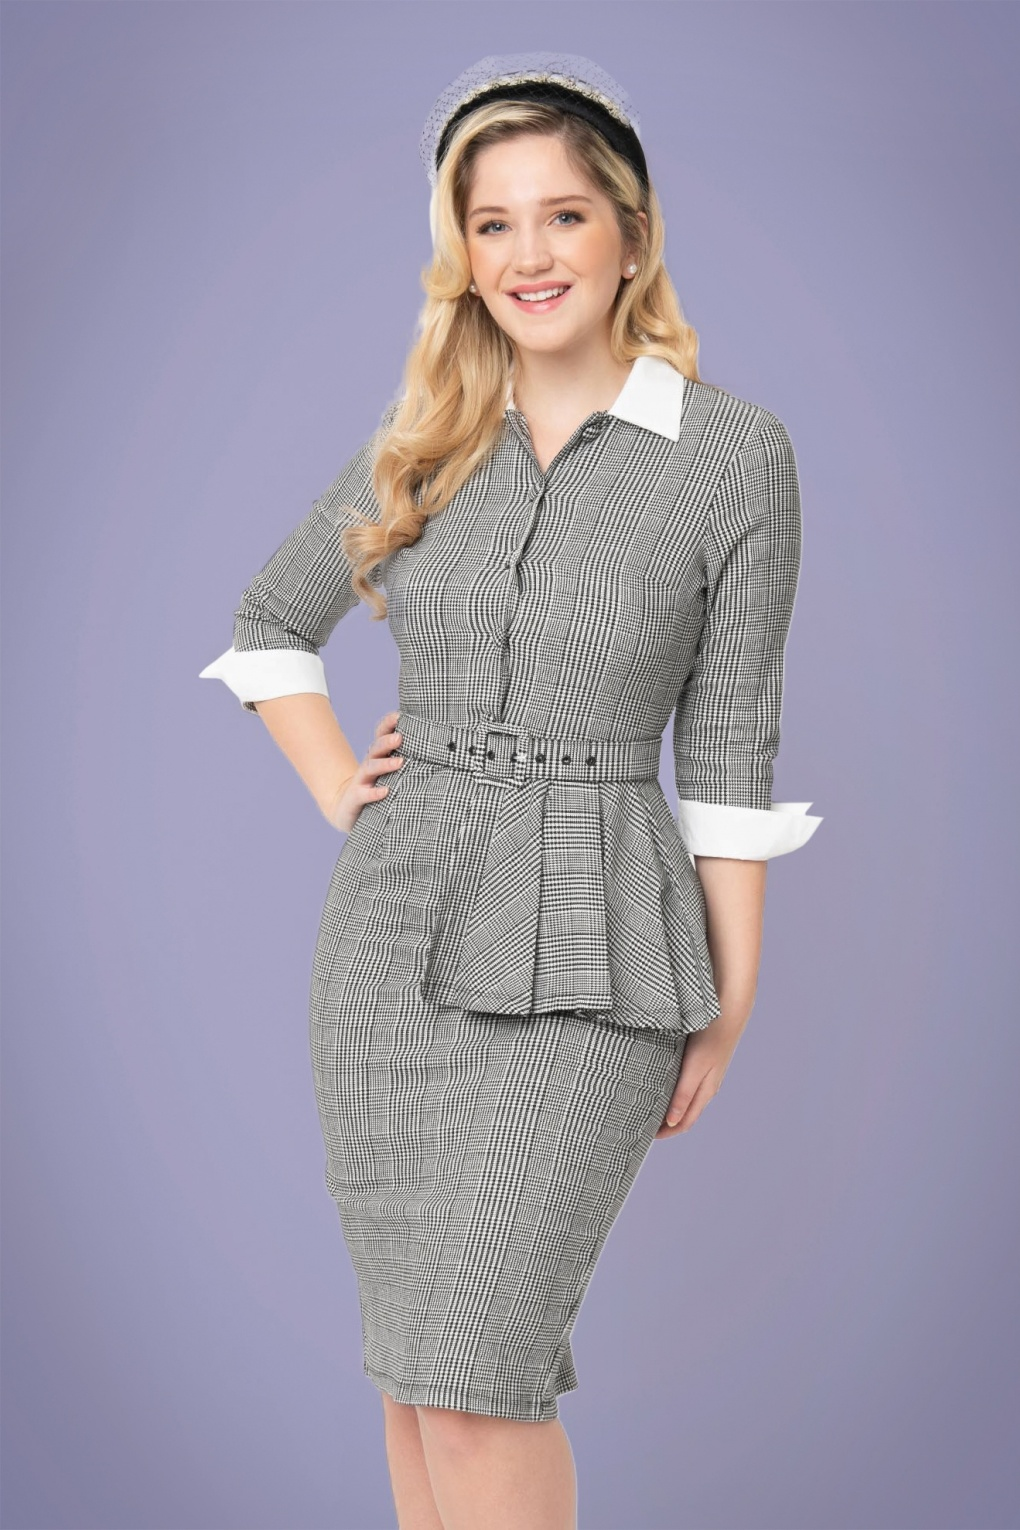 What Did Women Wear in the 1950s? 1950s Fashion Guide 50s I Love Lucy x UV TV Star Pencil Dress in Black and White Houndstooth £111.65 AT vintagedancer.com